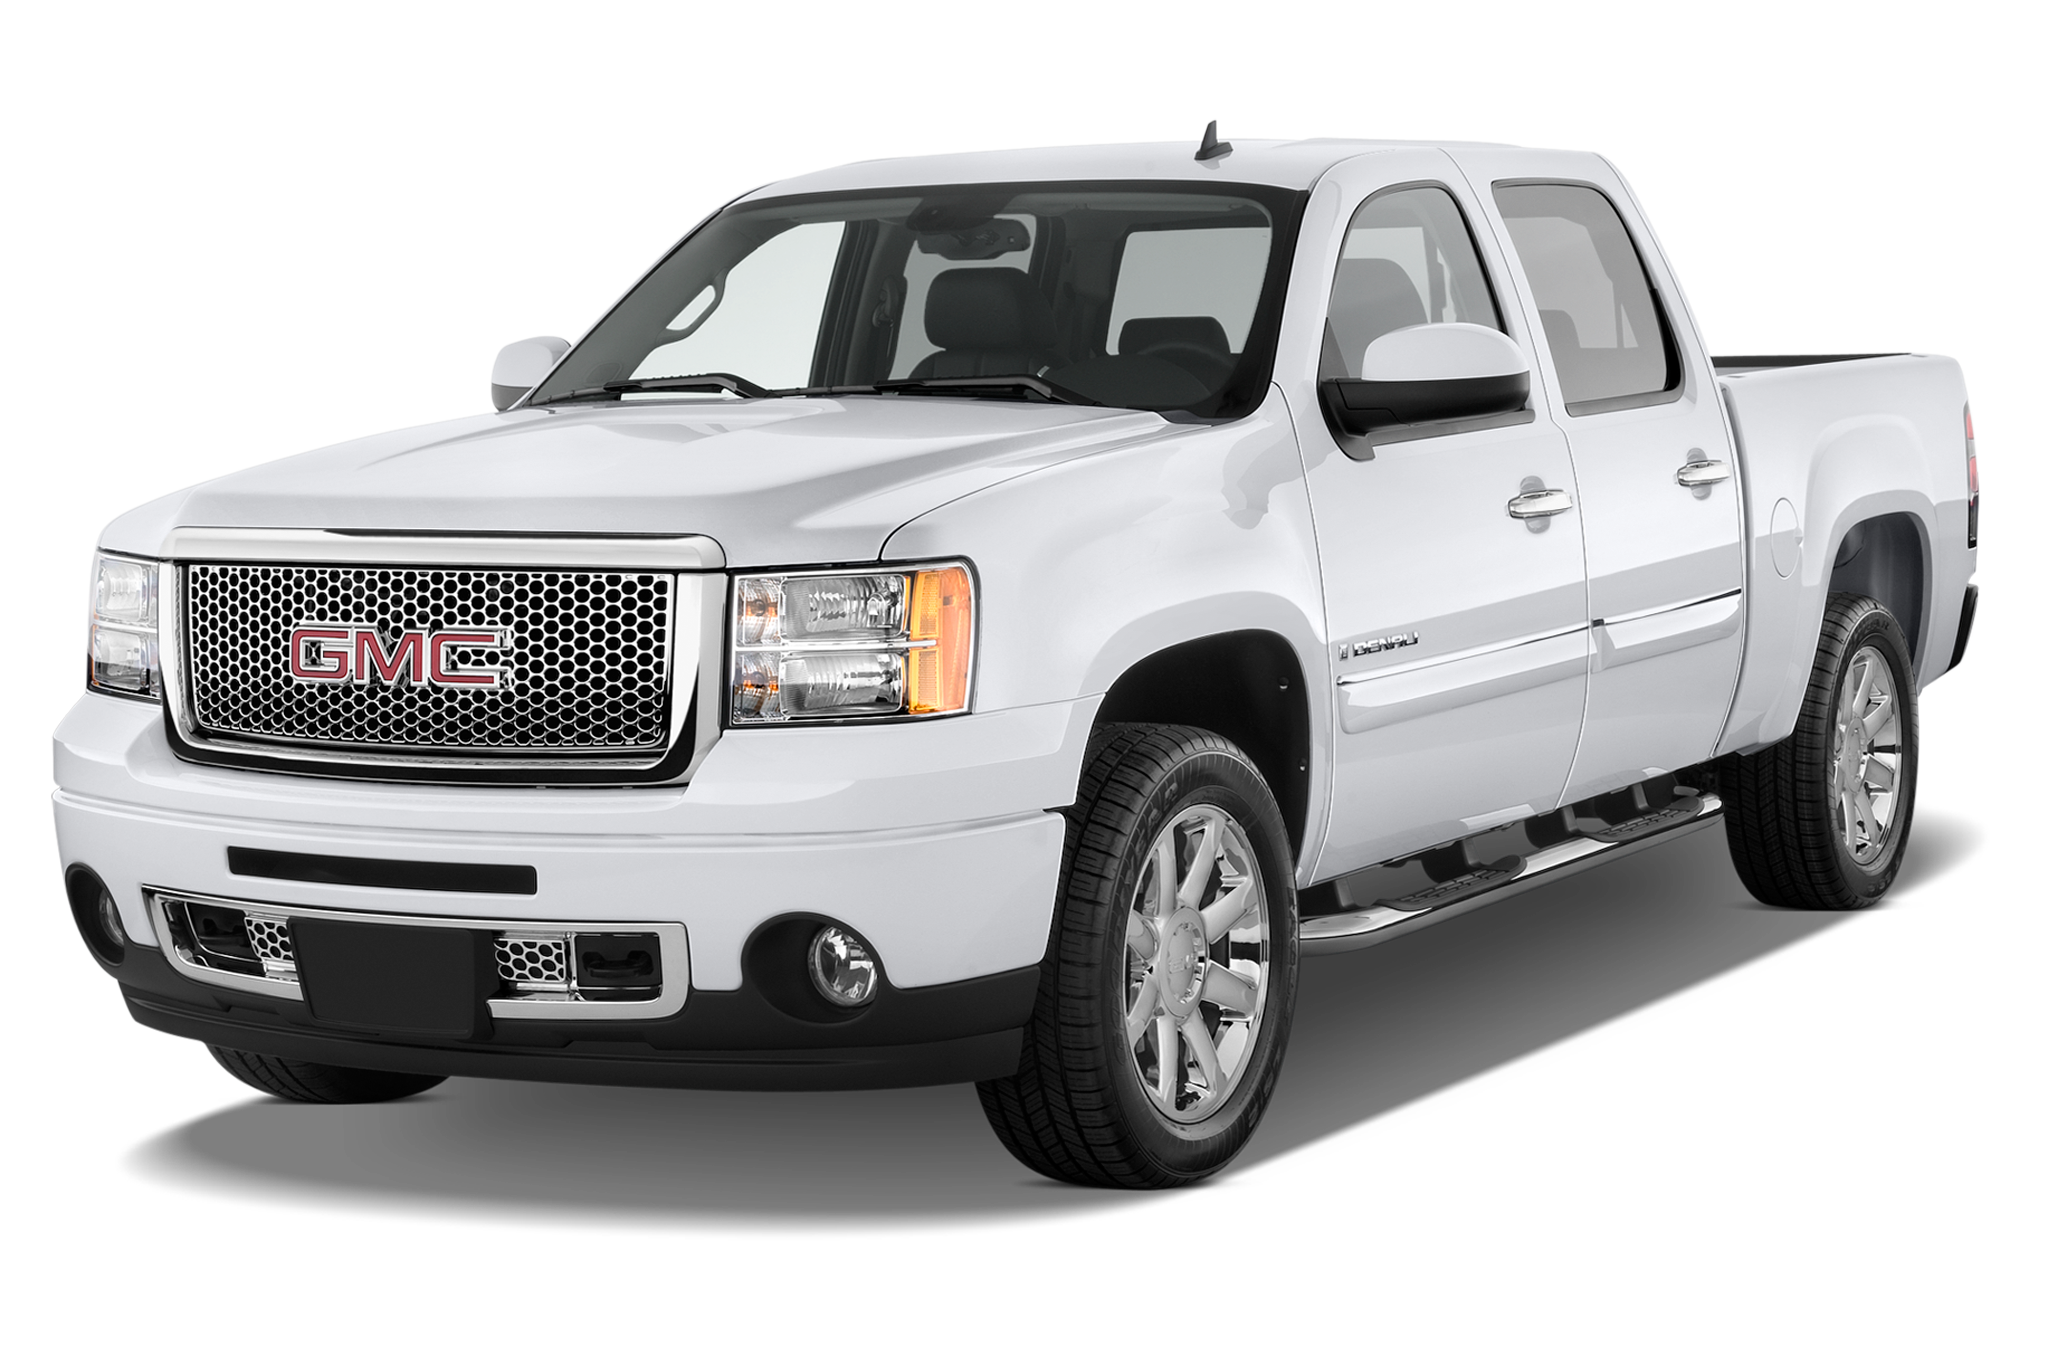 2013 gmc sierra 1500 denali 2wd crew cab short box specs and features msn autos. Black Bedroom Furniture Sets. Home Design Ideas